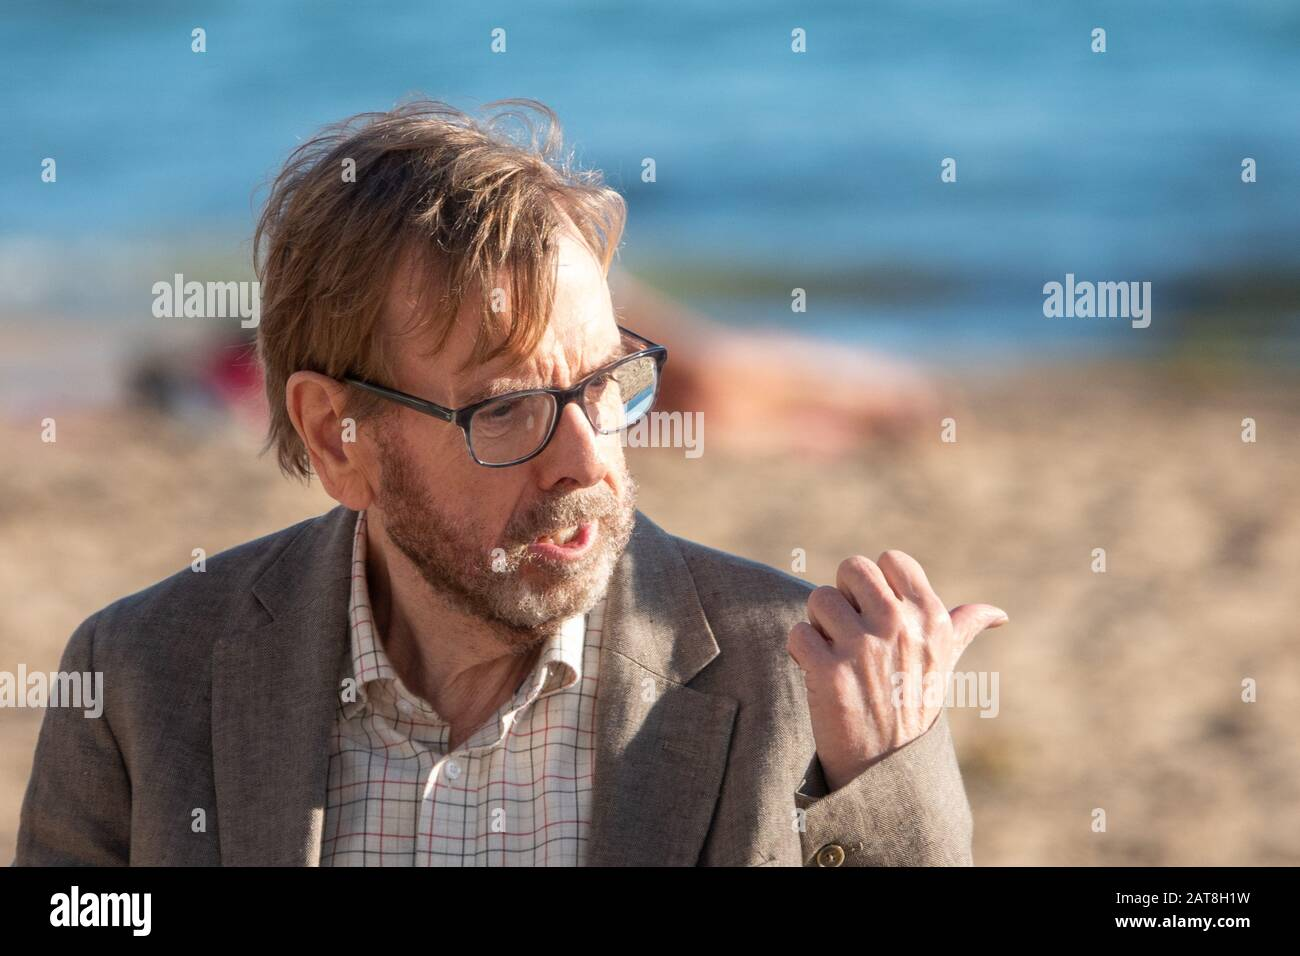 "Benidorm, Costa Blanca, Spain. 31st Jan, 2020. British actor Timothy Spall on location for the movie ""It snows in Benidorm"" Seen here on Levante Beach. Credit: Mick Flynn/Alamy Live News Stock Photo"